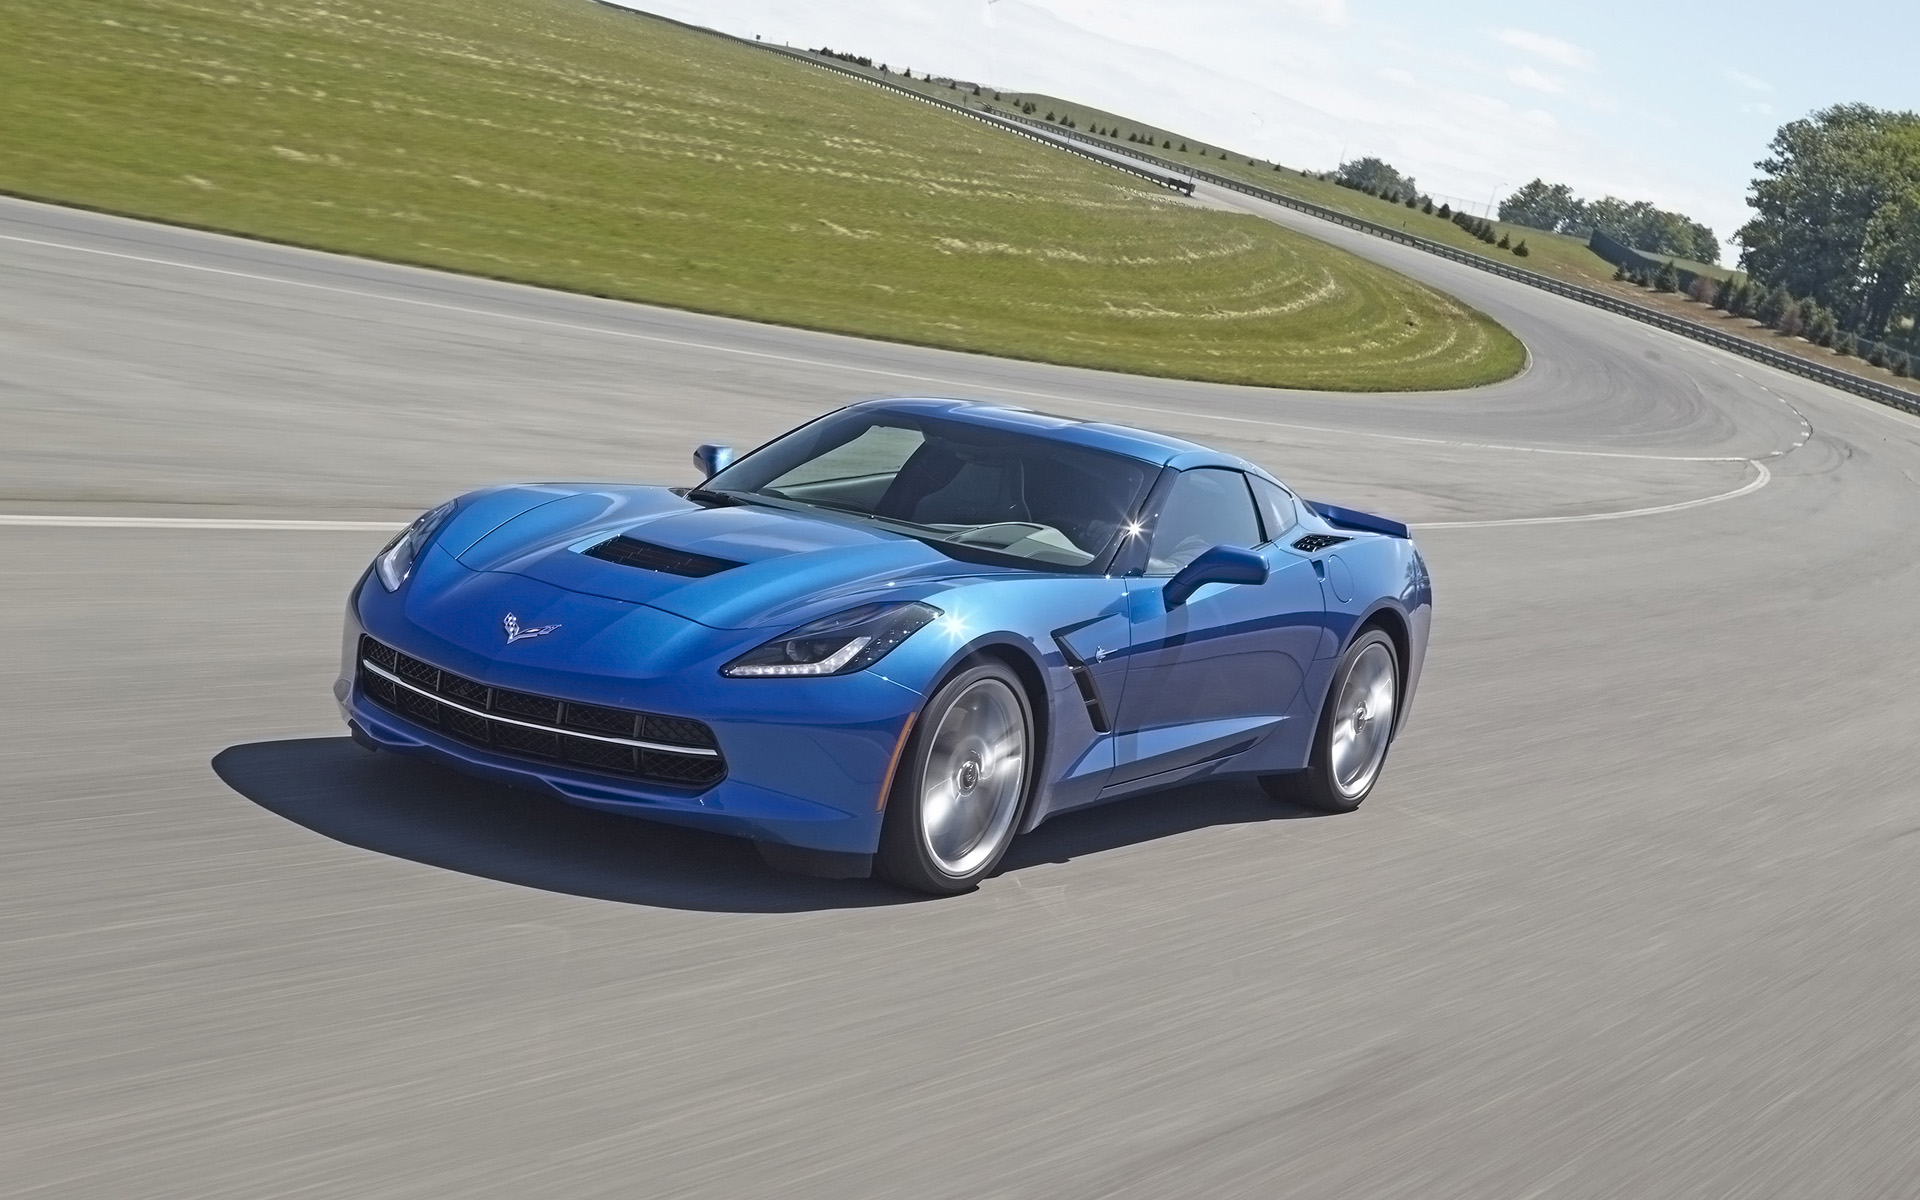 2014 corvette stingray blue 2014 Chevrolet Corvette Stingray Z51 - Blue - 4 - 1920x1200